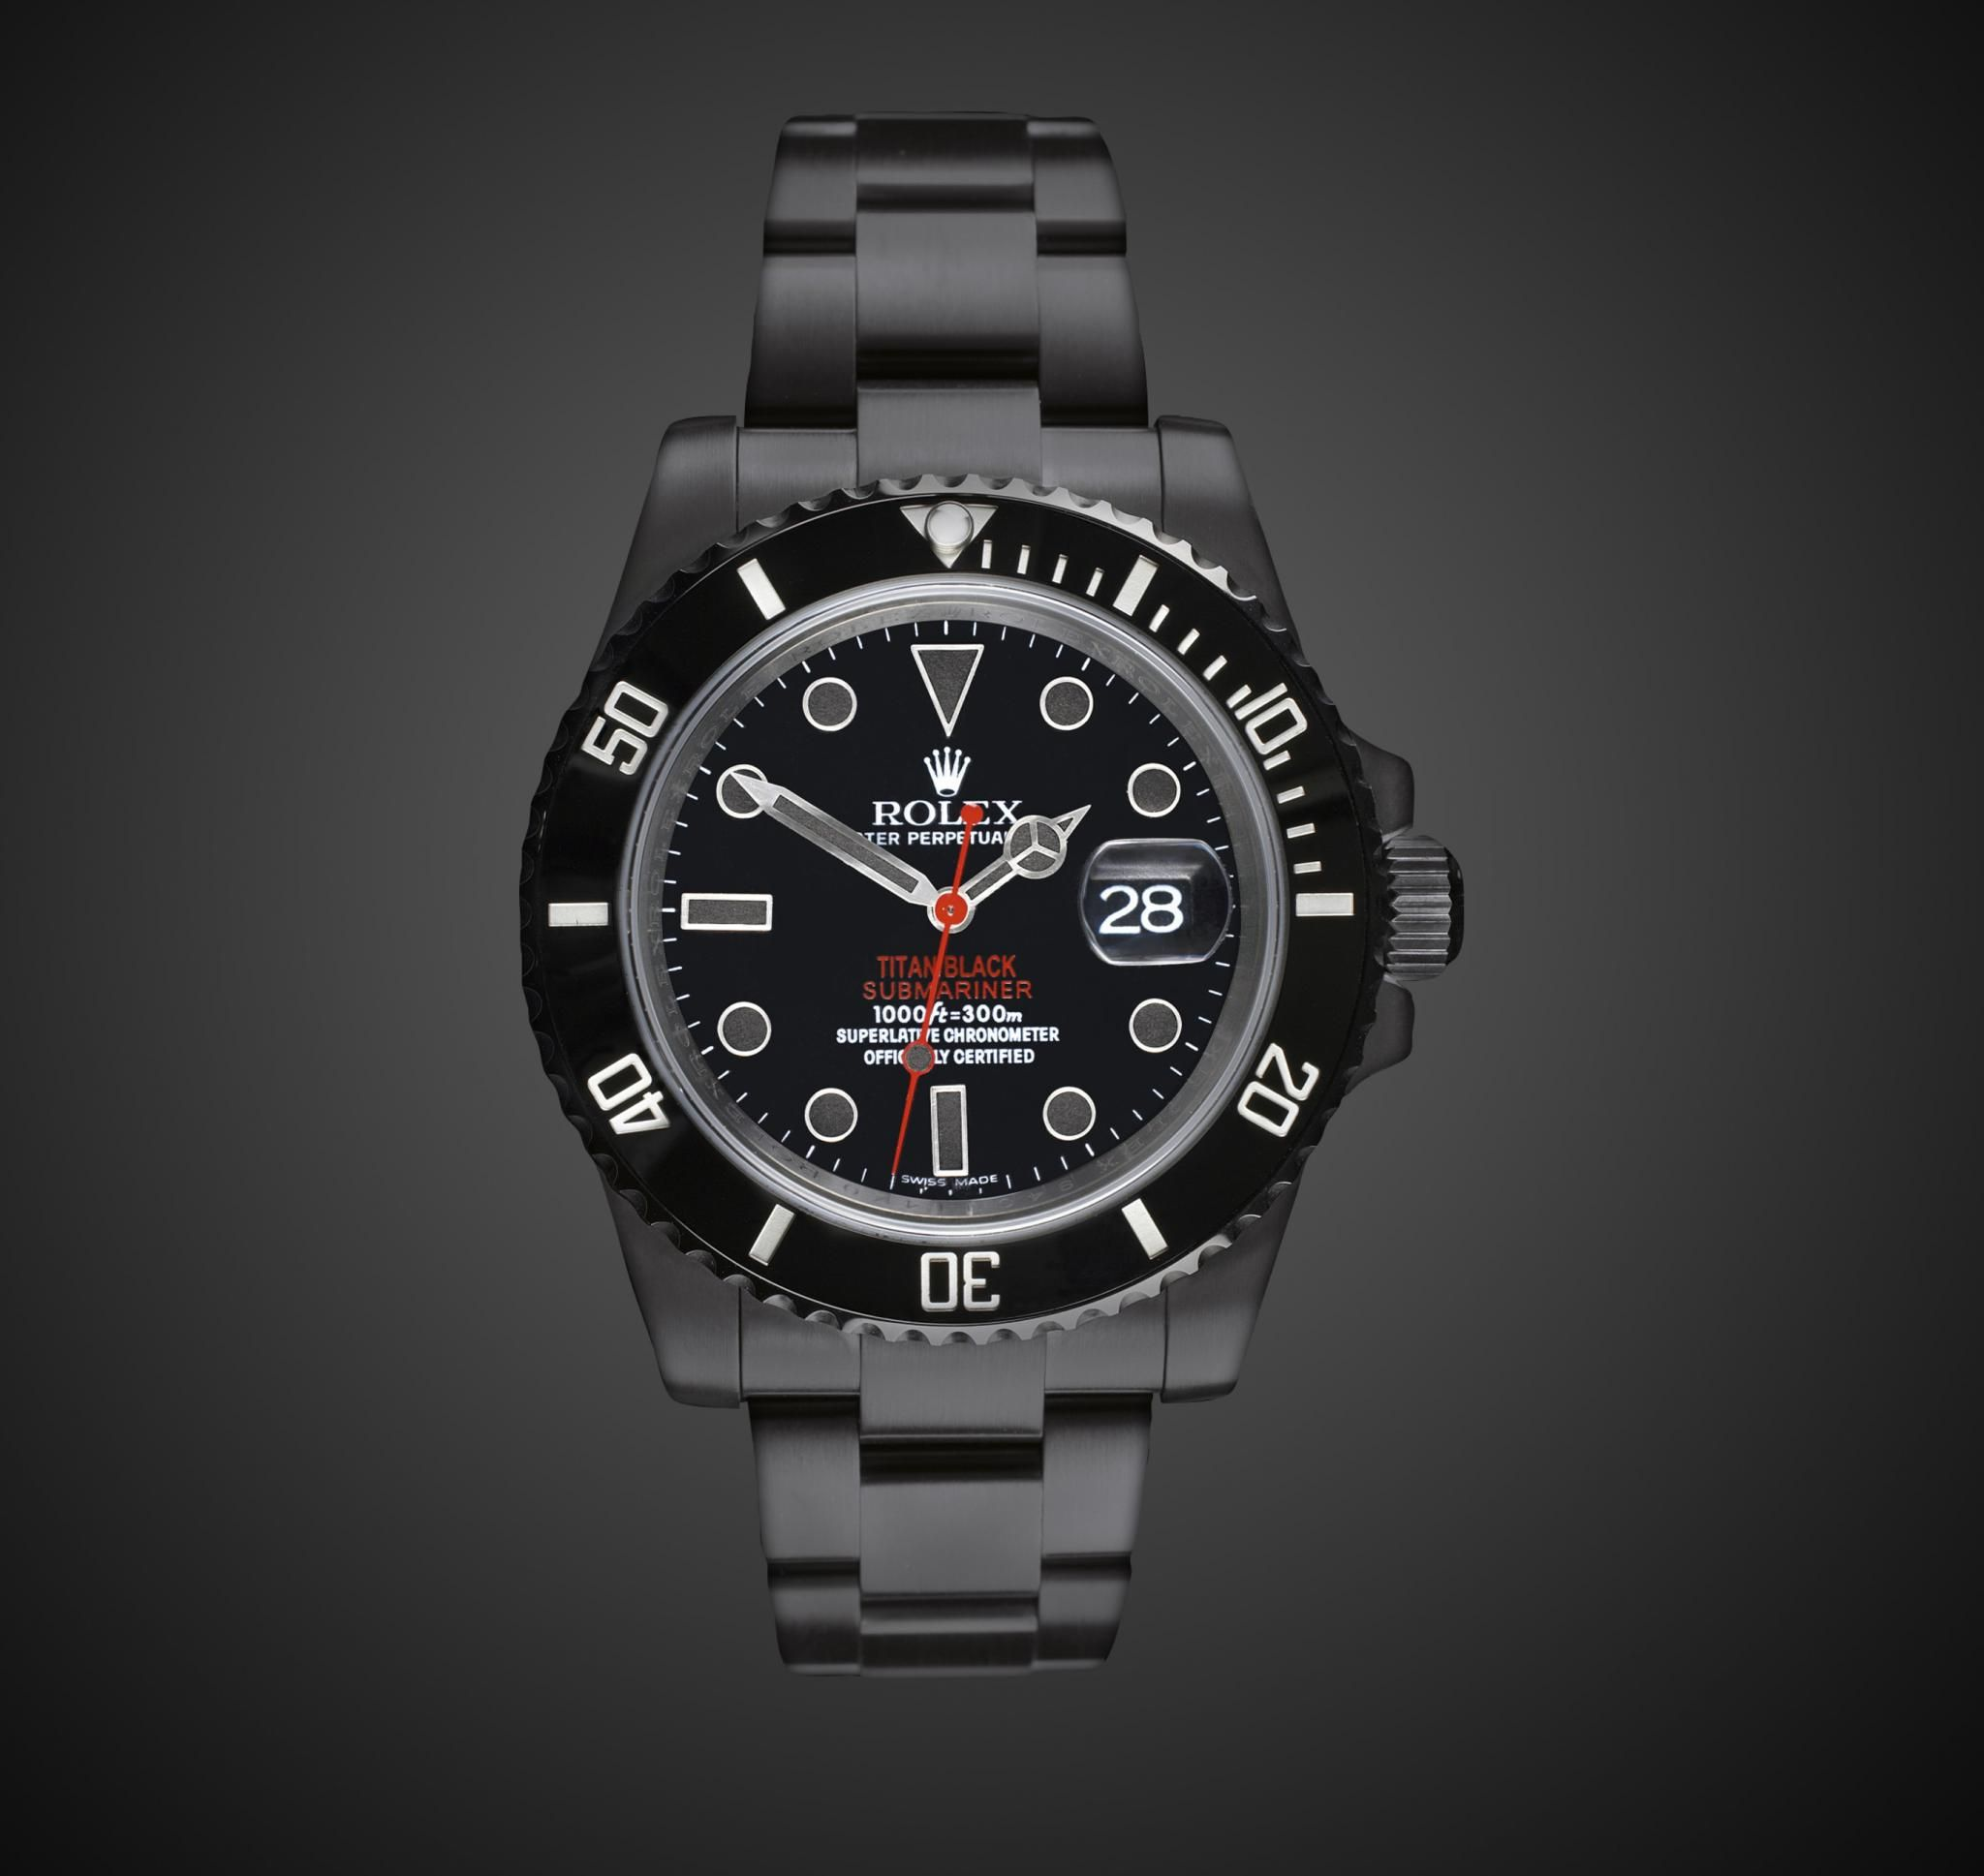 Titan black rolex submariner stealth dlc black rolex pvd fashion pinterest rolex for Submarine watches